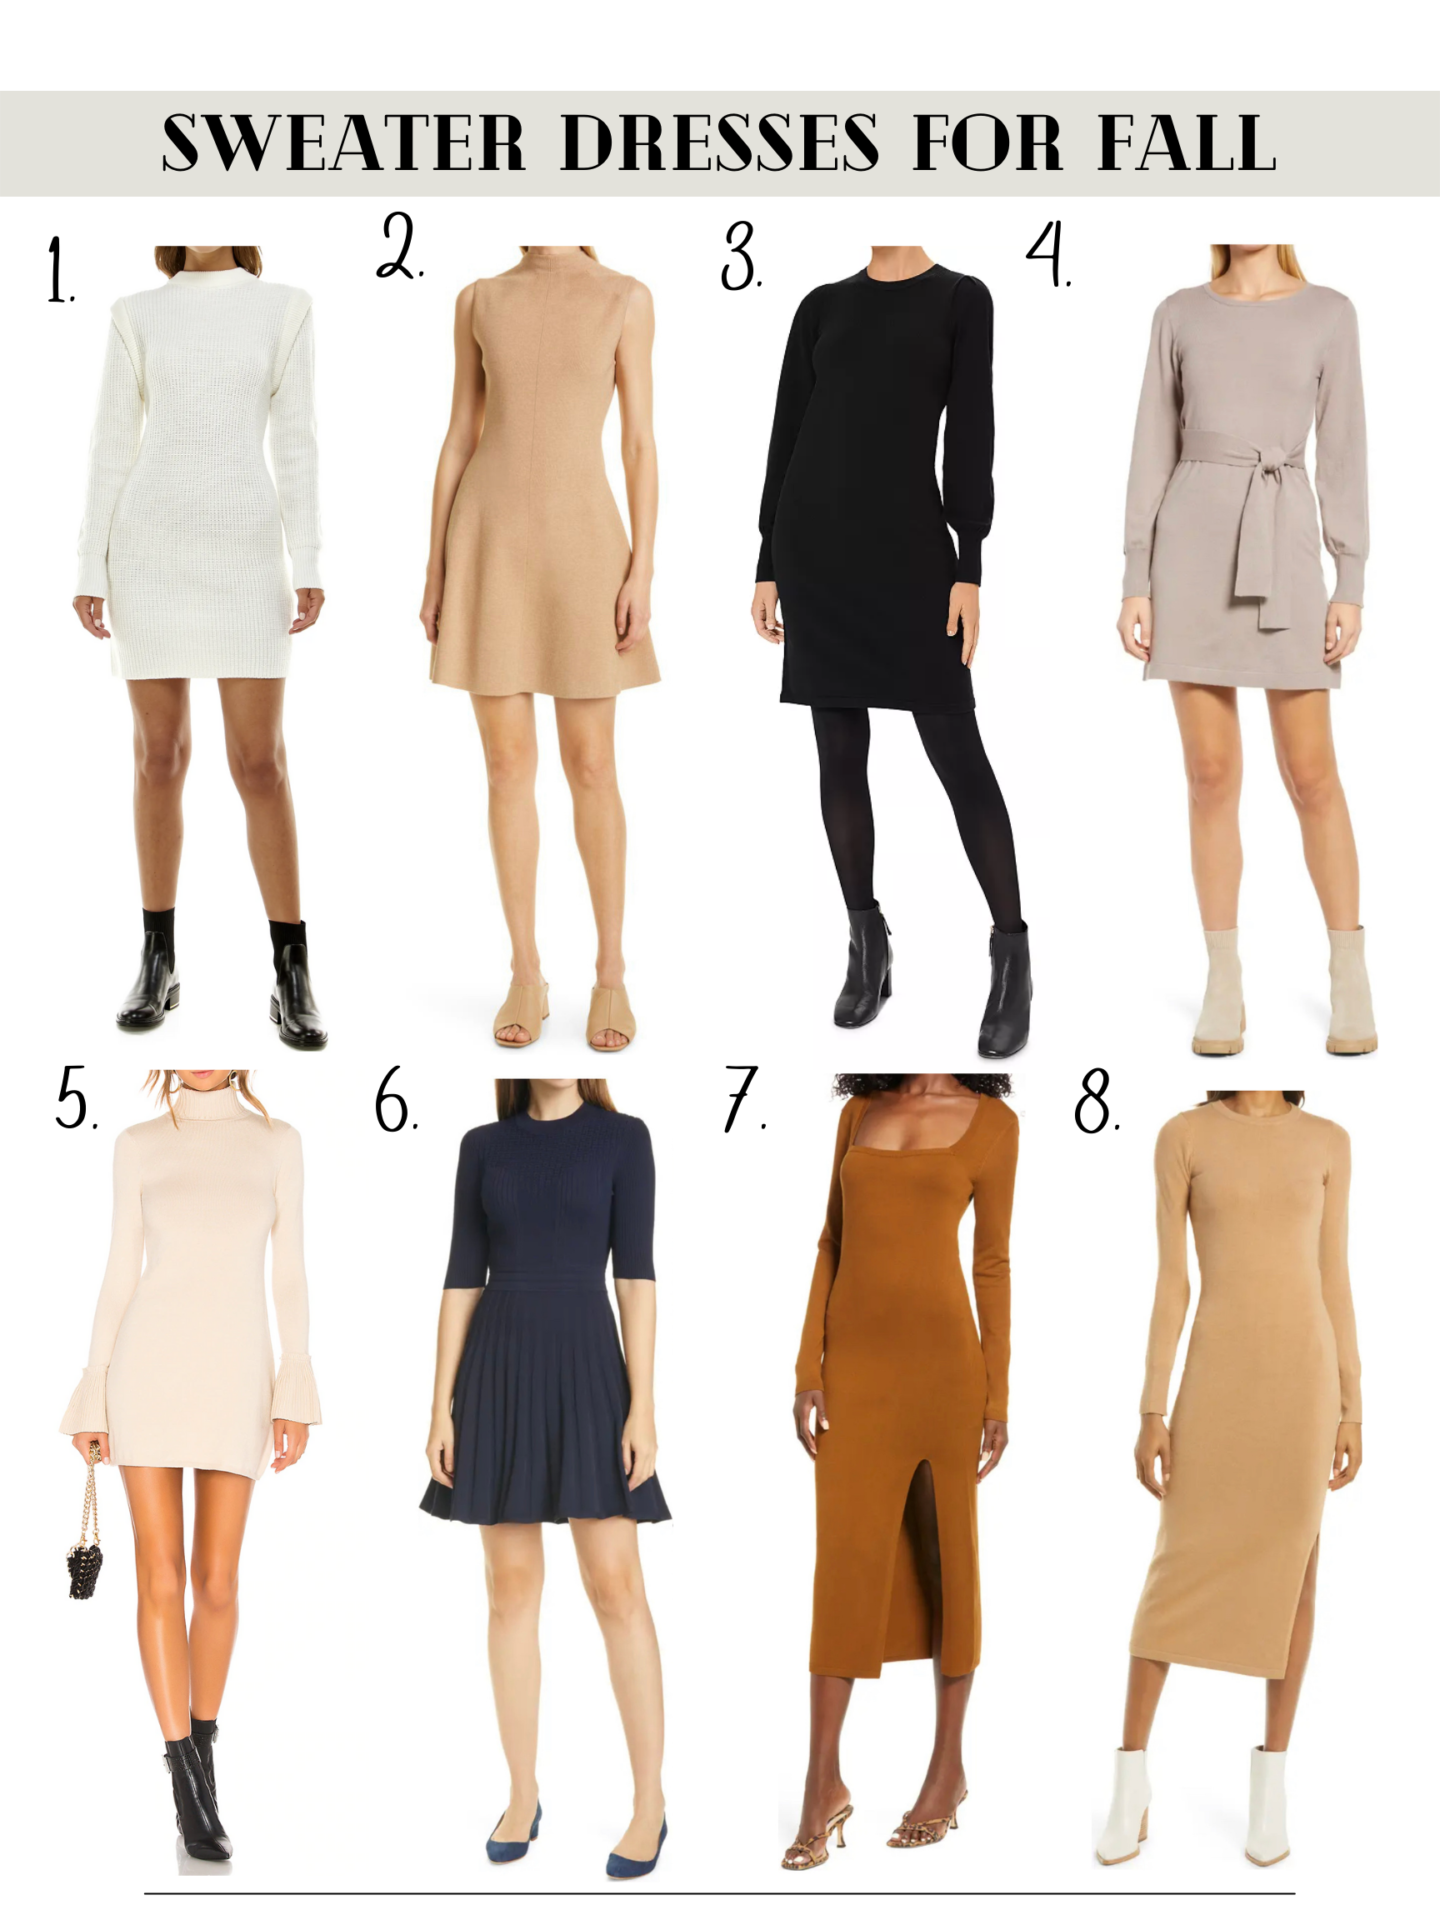 10 sweater dresses for fall